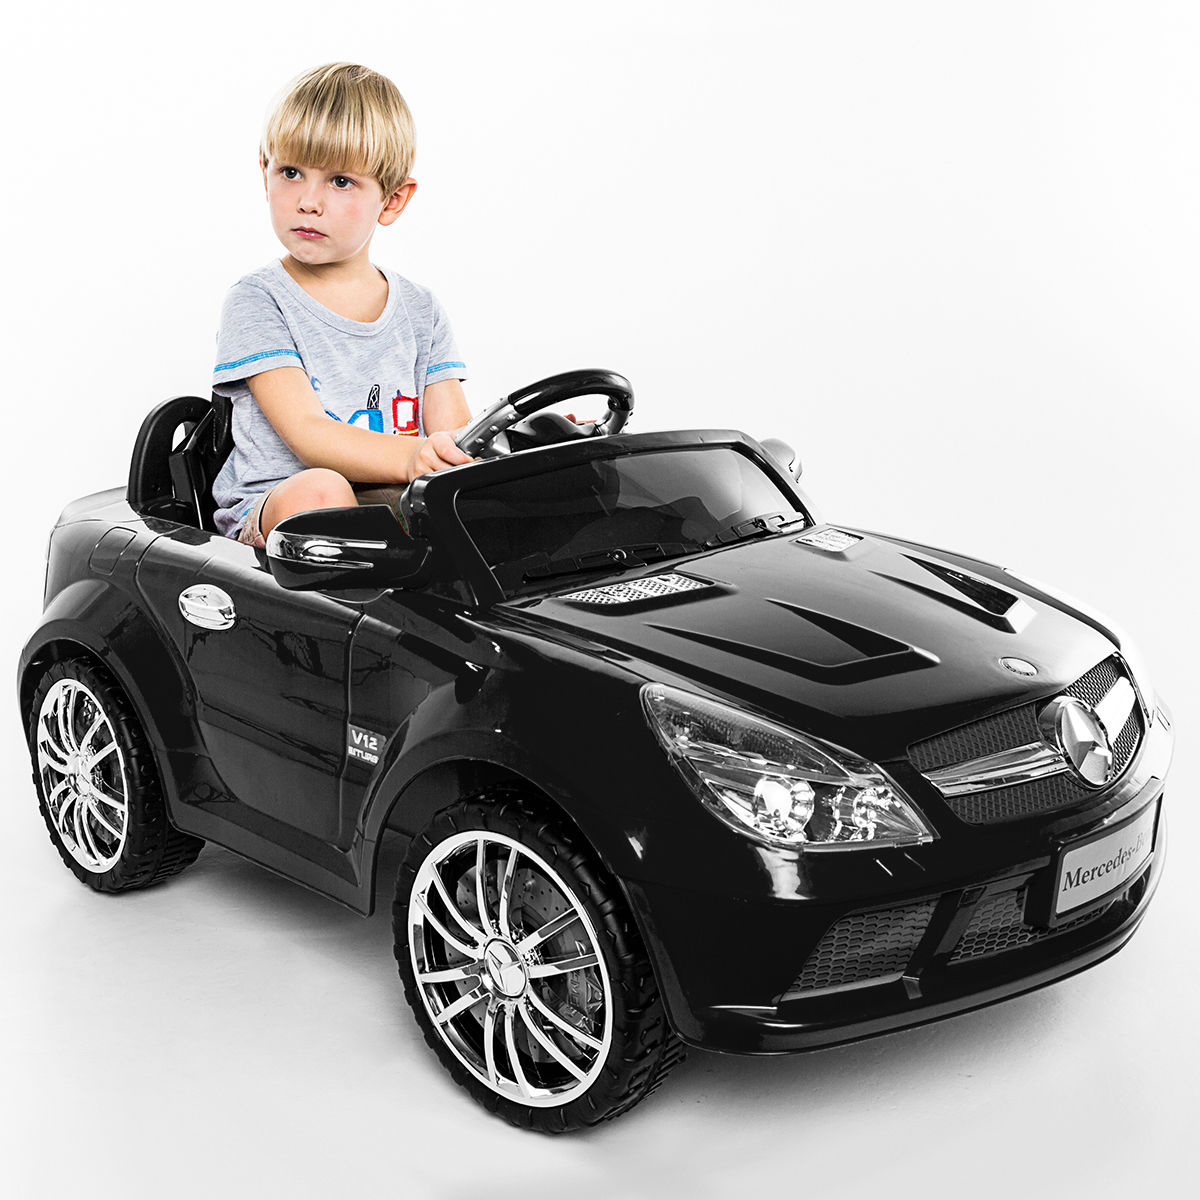 Costway 12V Mercedes-Benz SL65 Electric Kids Ride On Car Music RC Remote Control Black